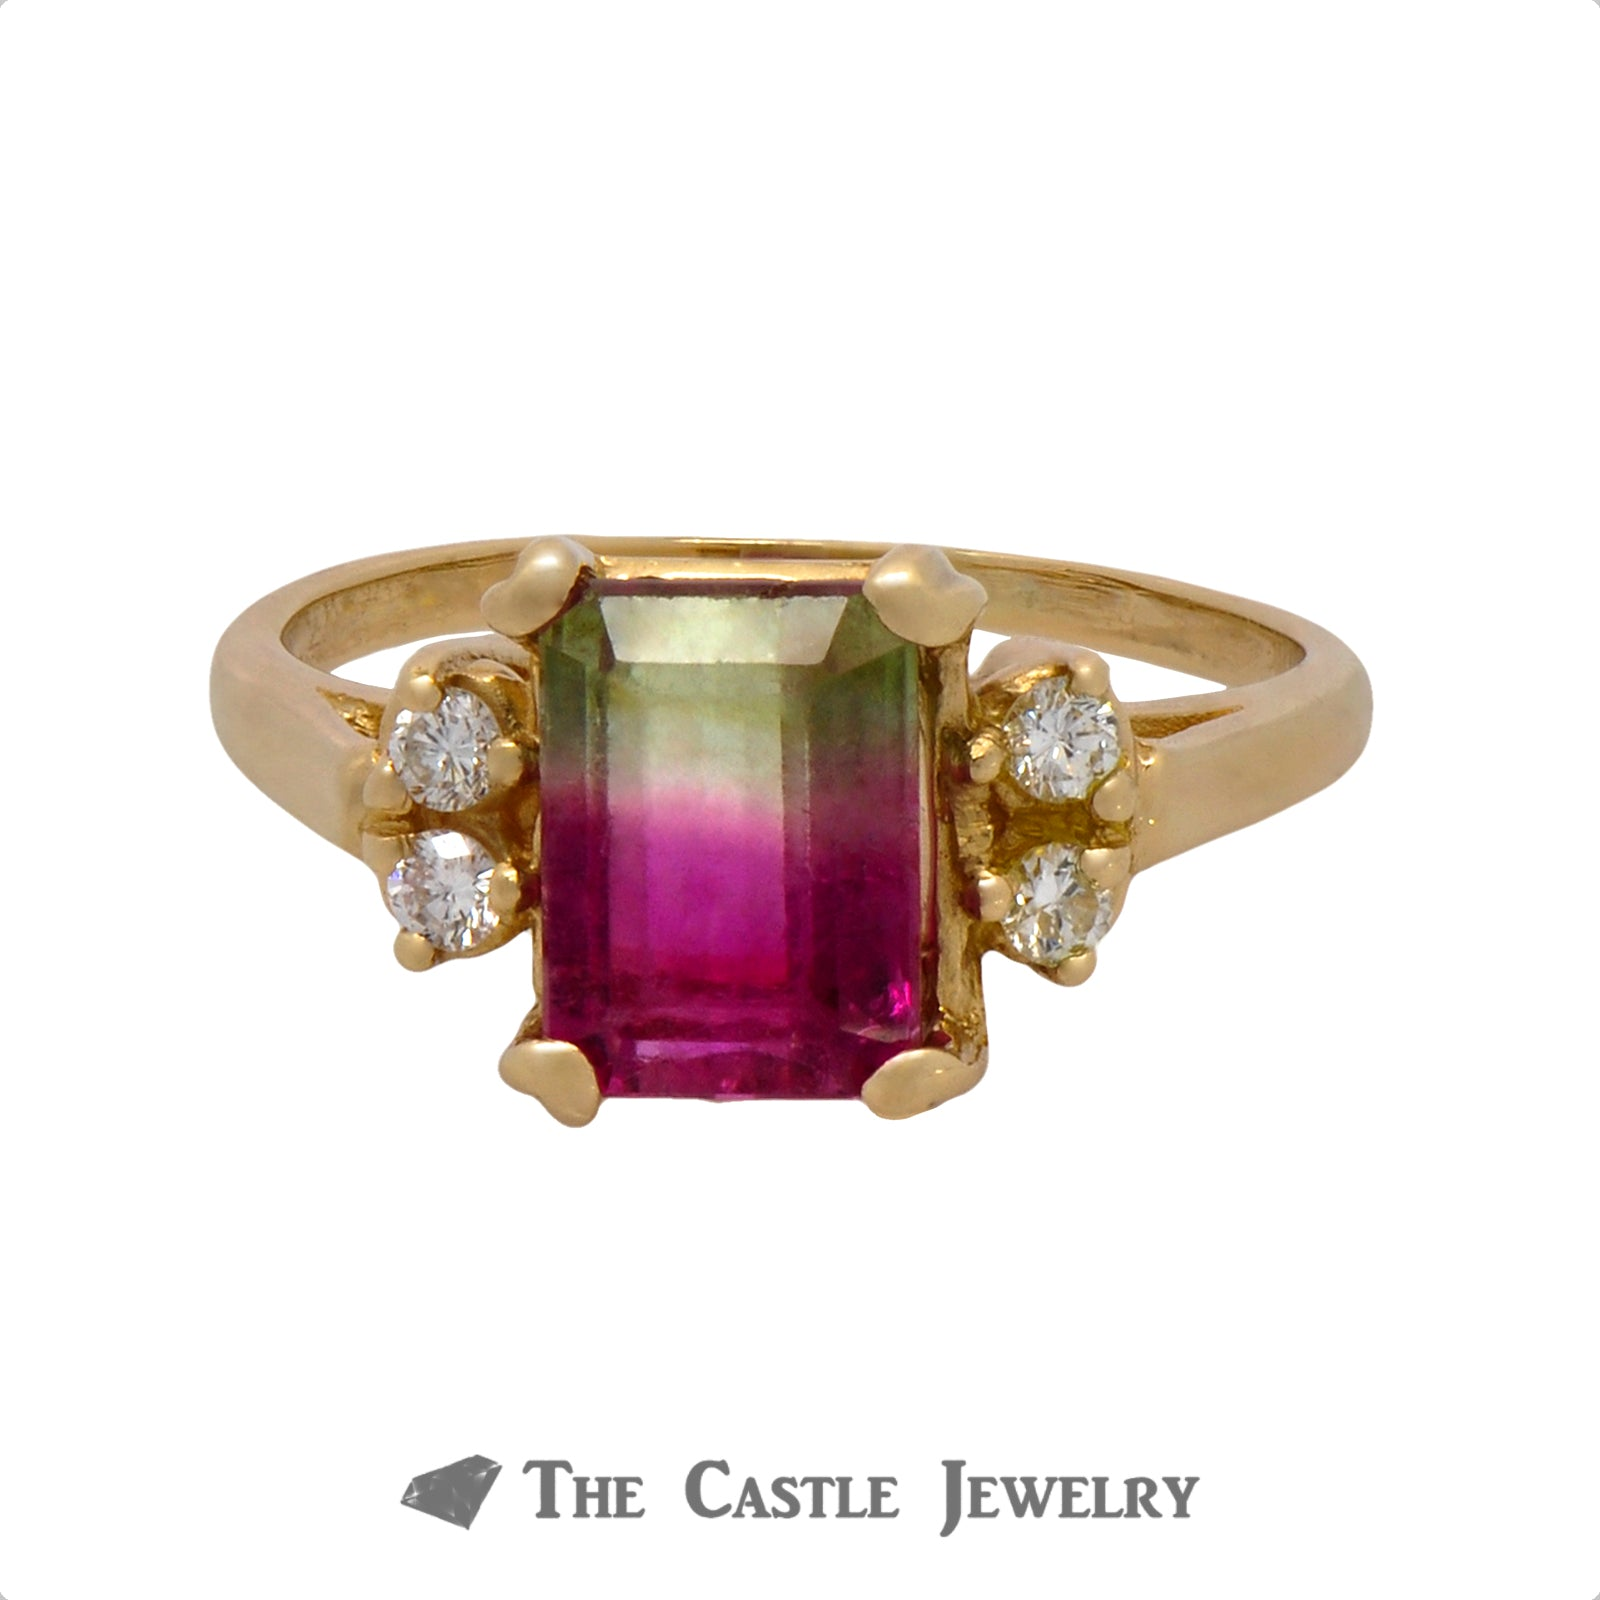 Watermelon Tourmaline Ring with Double Diamond Accents on Each Side Crafted in 14k Yellow Gold